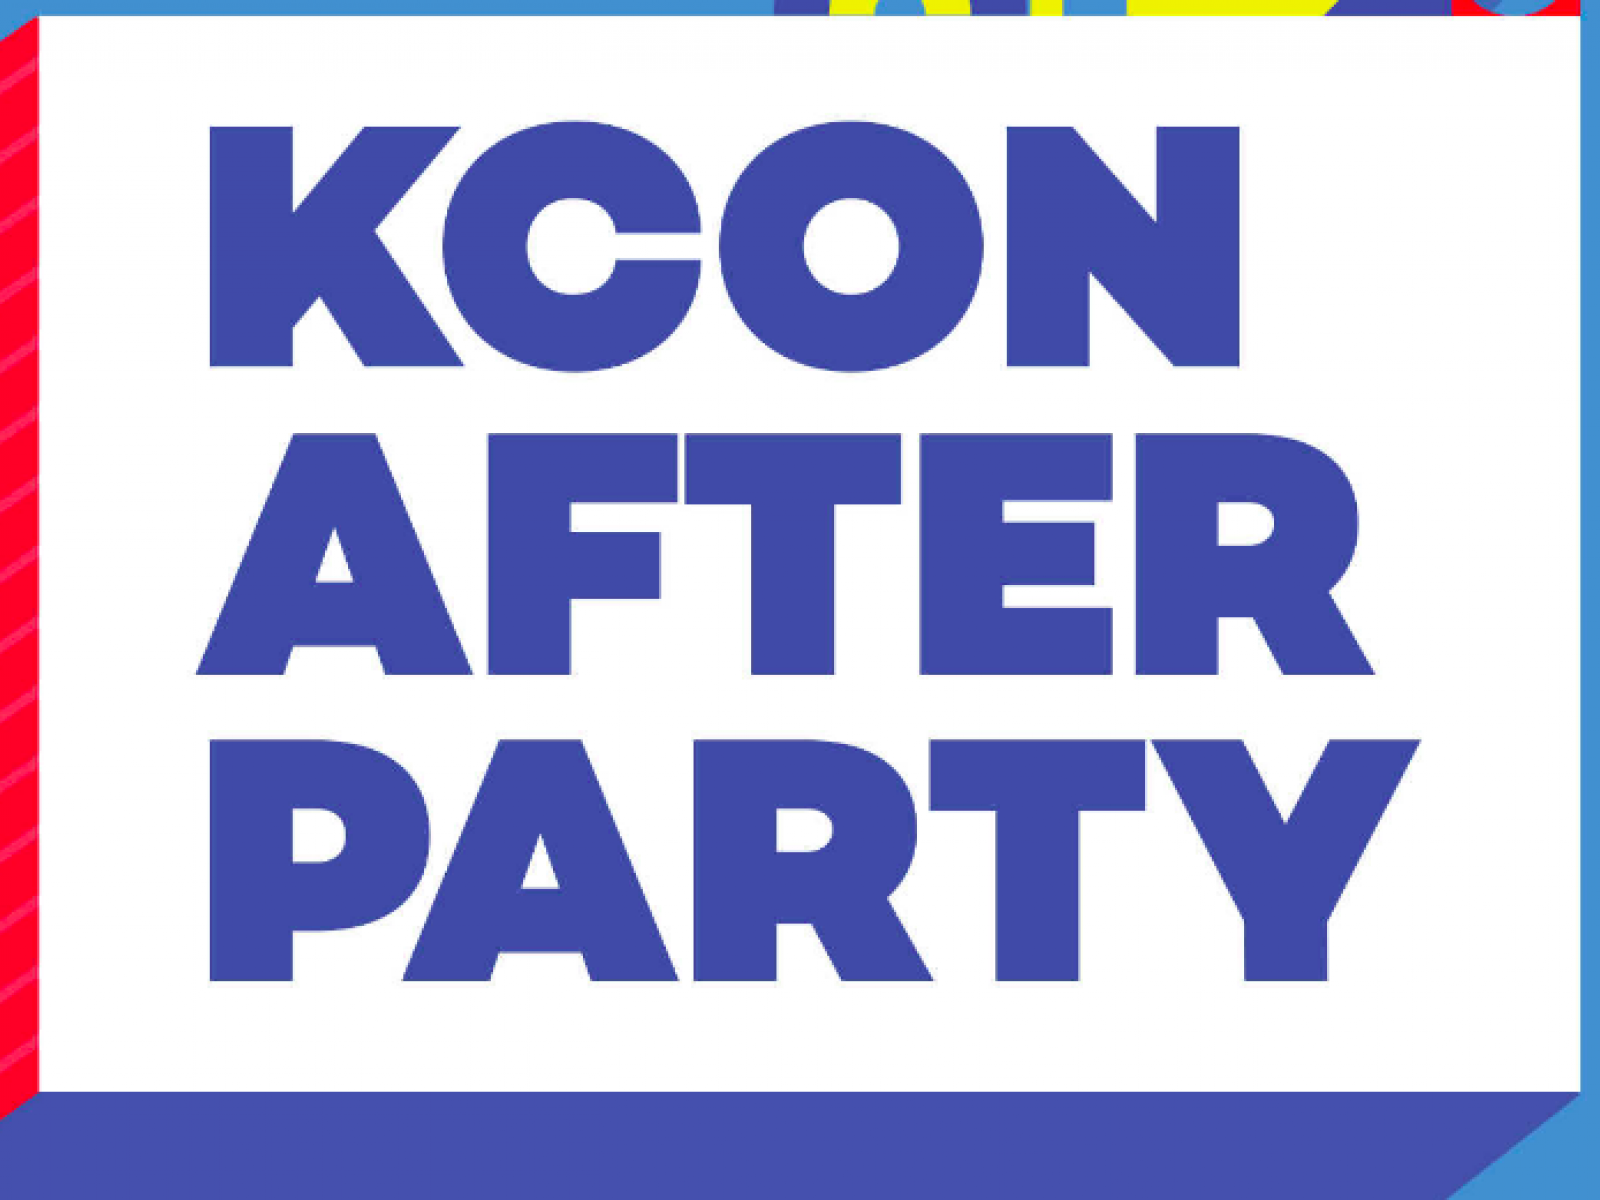 Main image for event titled KCON After Party